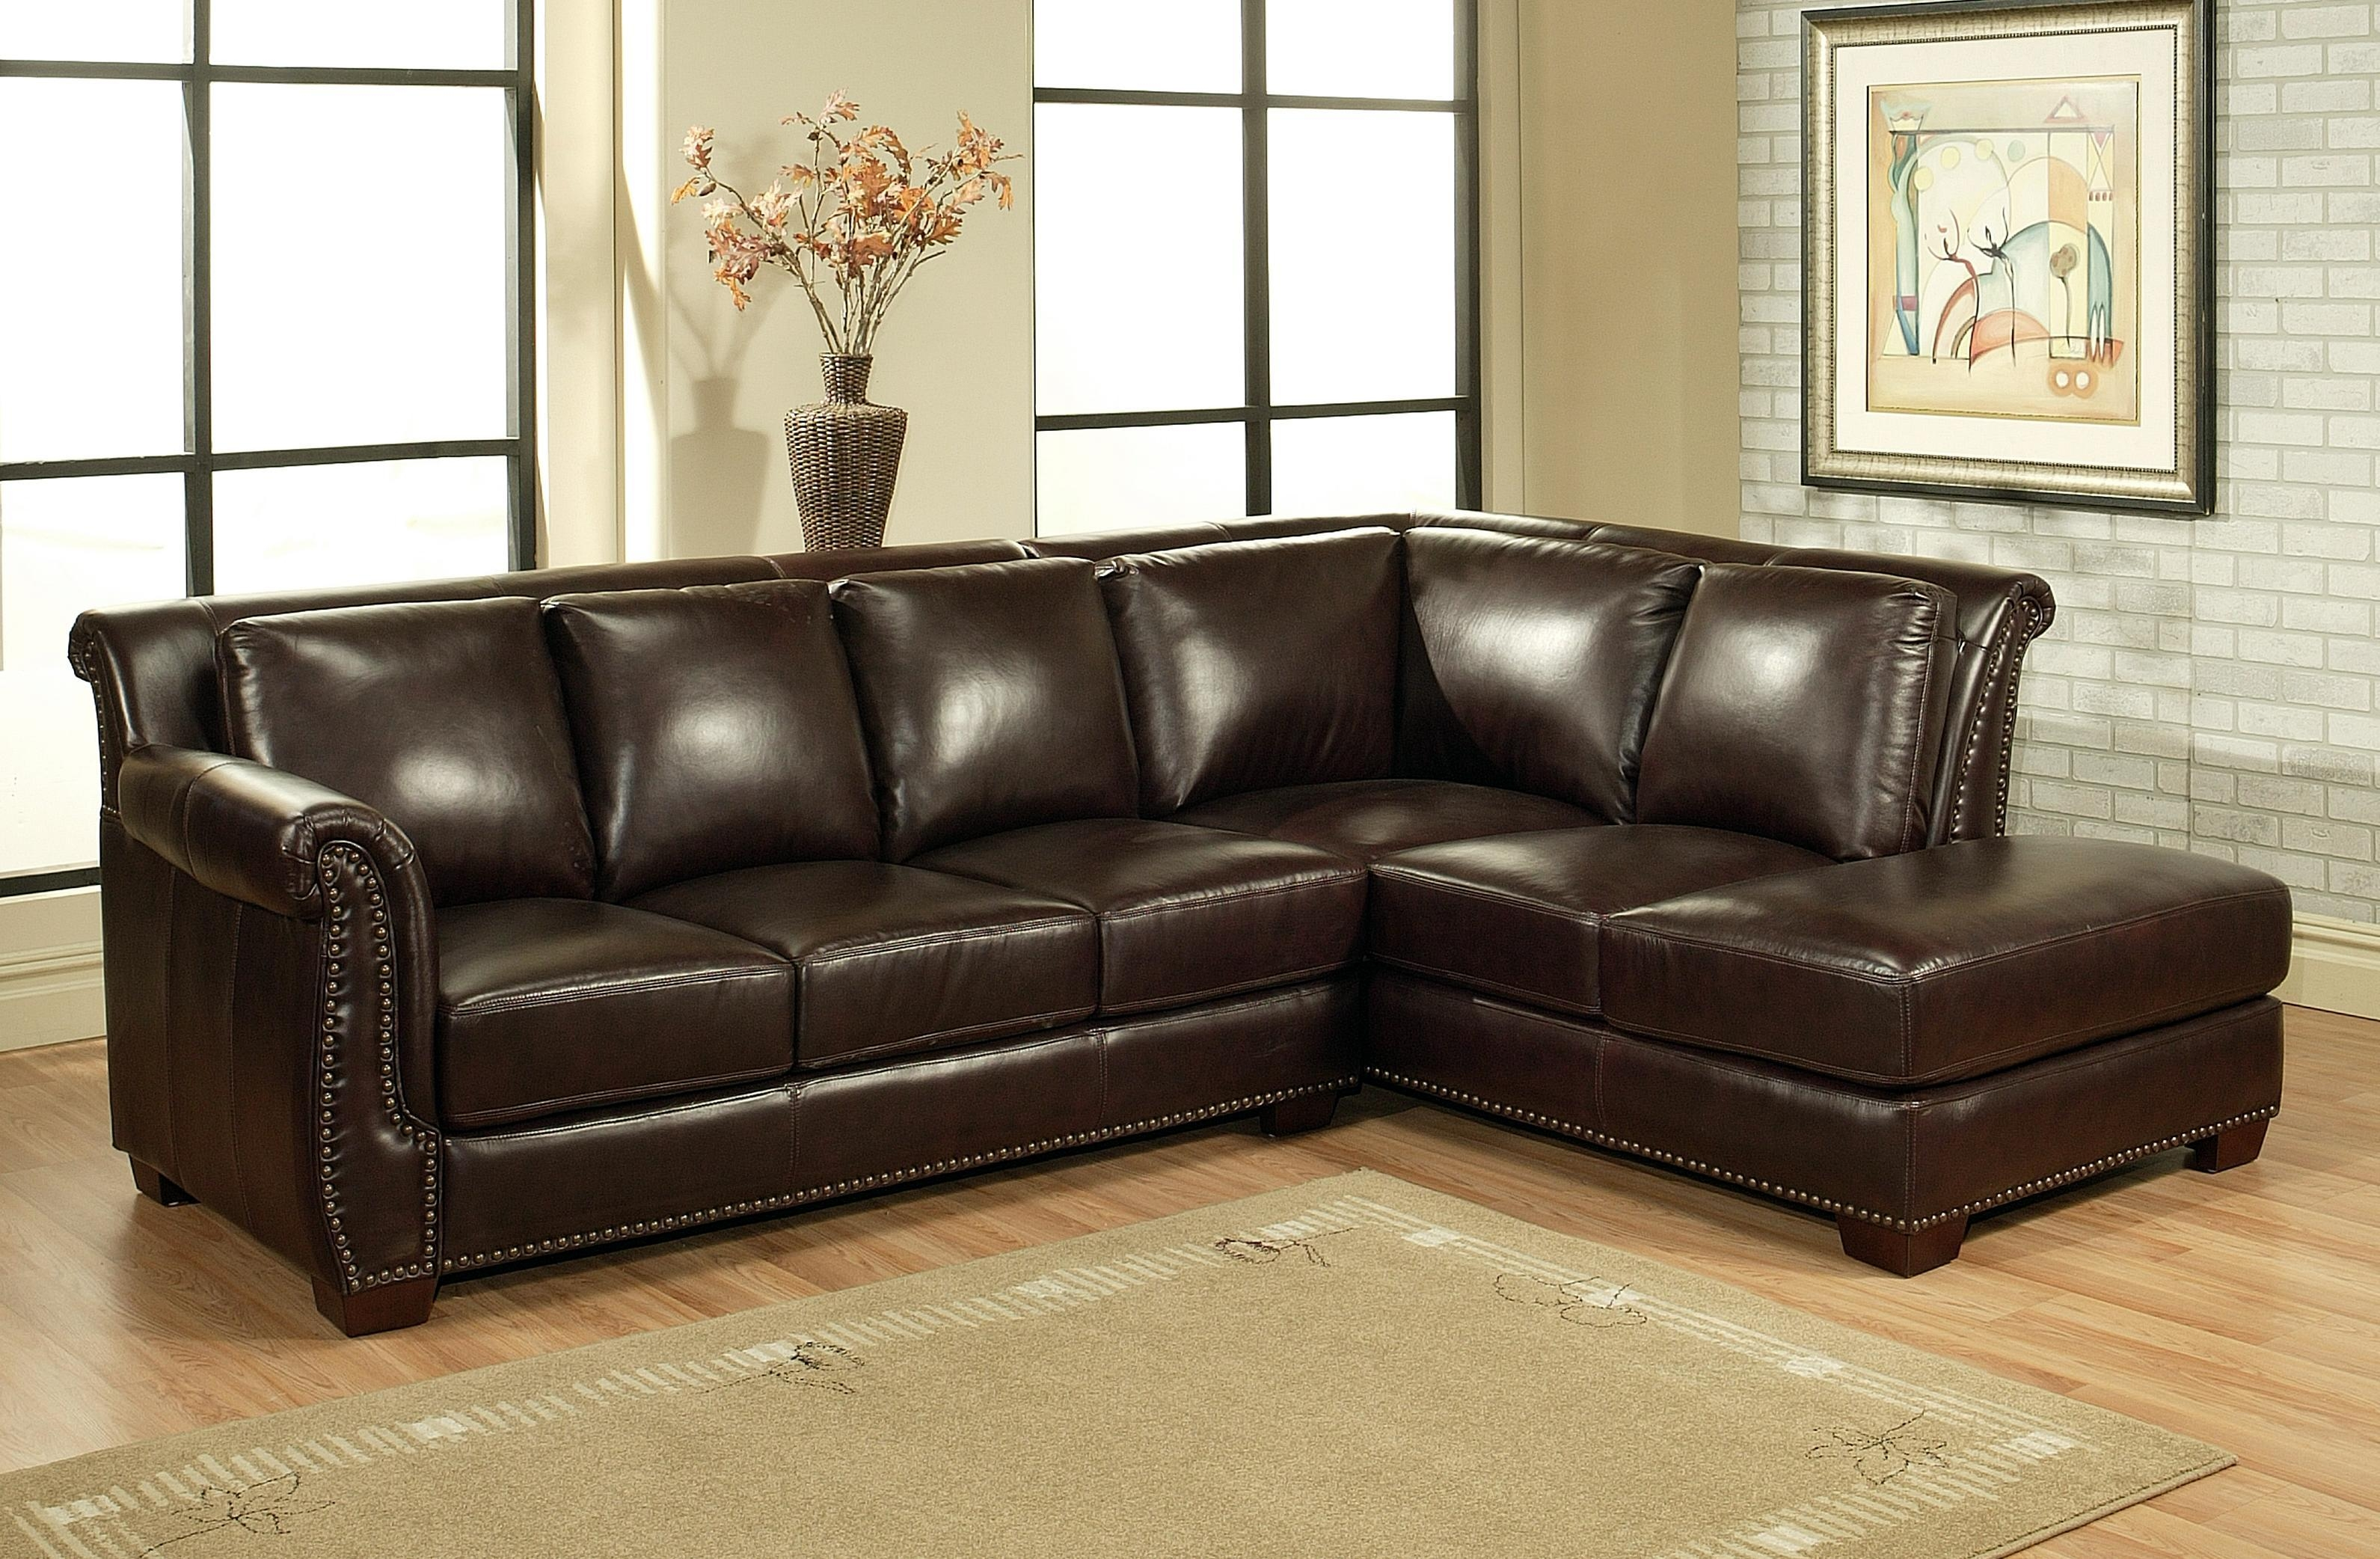 Sofa Leather Sectional Pertaining To Abbyson Living Sectional Sofas (Image 19 of 20)